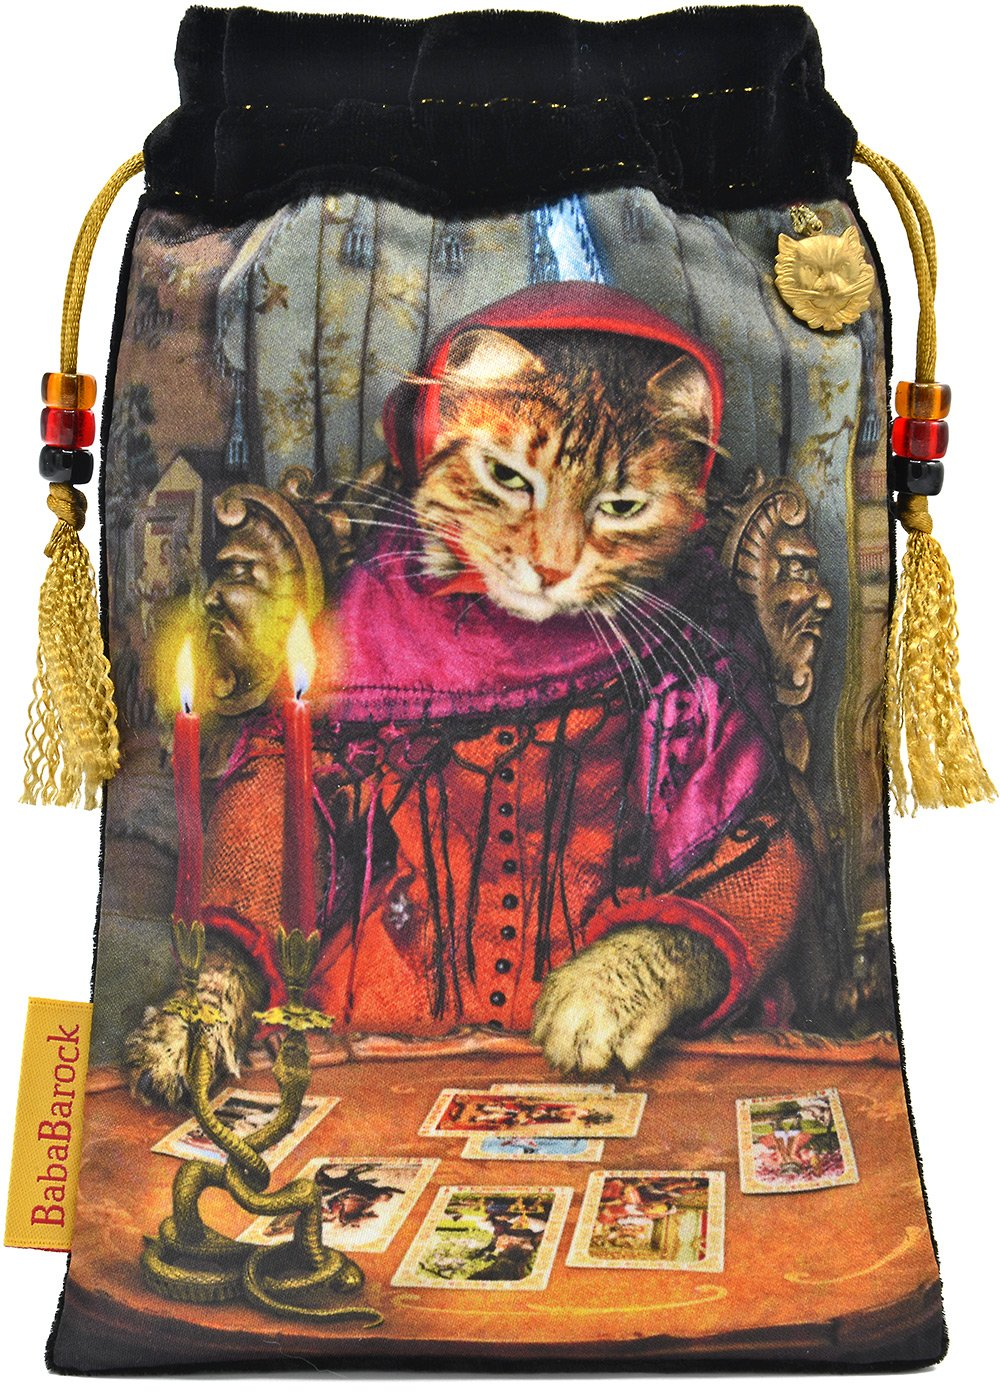 fortune teller, cat,  cartes de tarot, sac de tarot, bohemian cat, black cat, crystal ball, tarot bag, pouch, velvet, silk, printed,Wahrsagerin, Katze, Bohemienkatze, schwarze Katze, Kristallkugel, Tarotbeutel, Beutel, Samt, Seide, tarot reader,  bedruckt